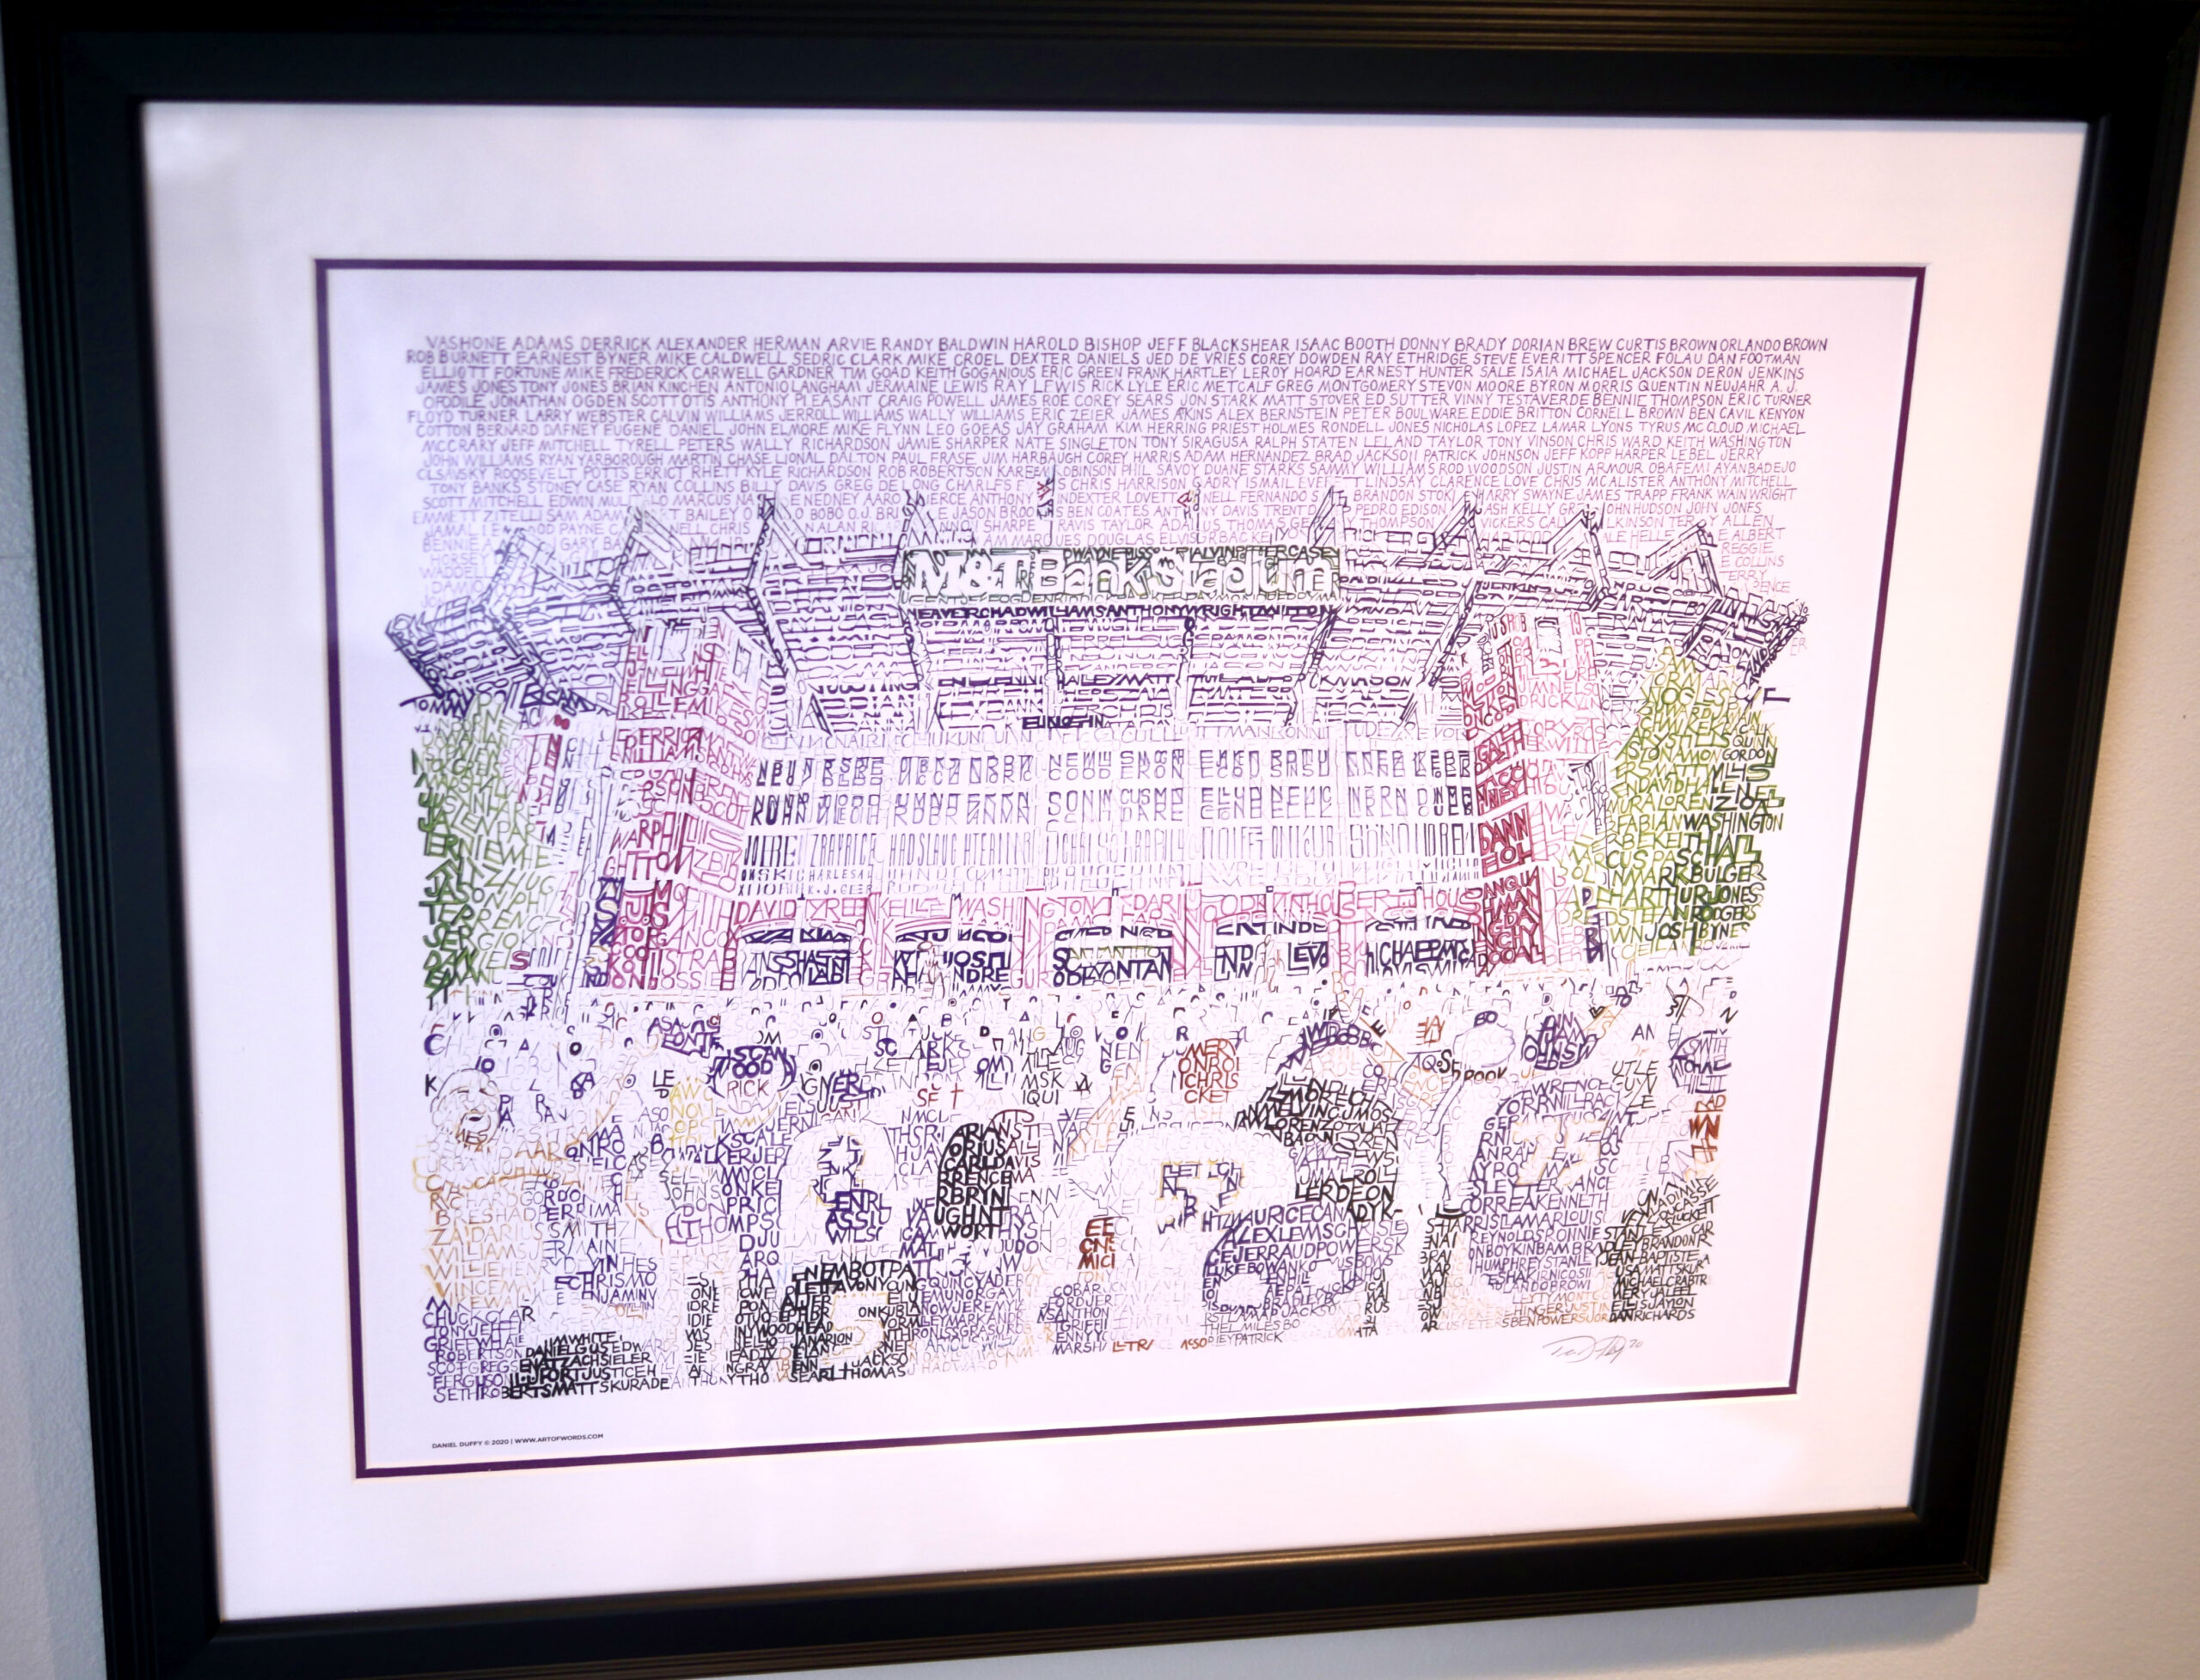 Art of Words M&T Bank Stadium handwritten with every Raven in history